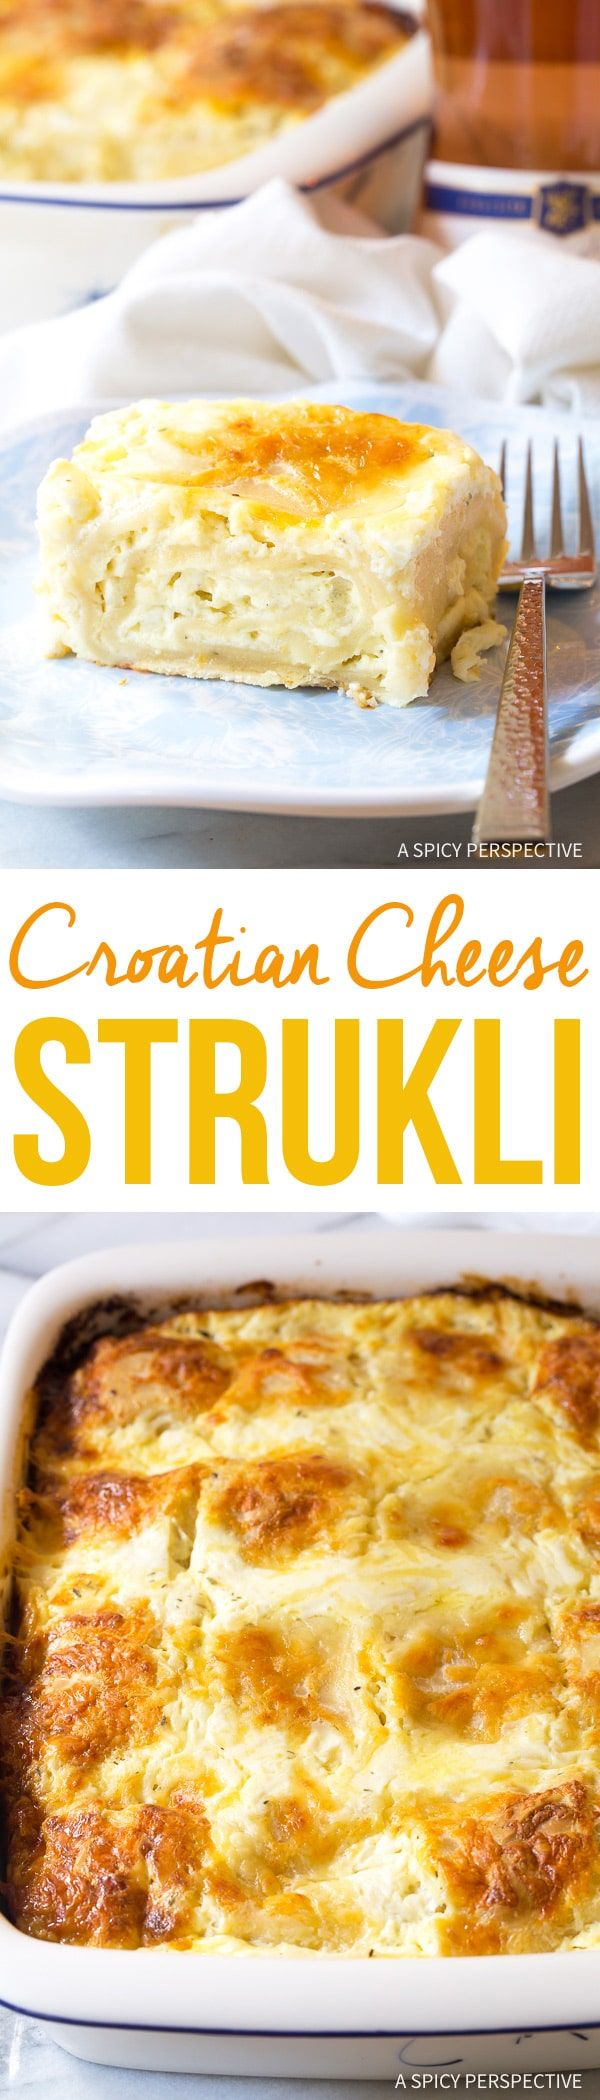 Croatian Cheese Strukli Recipe - Traditional Croatian cuisine at its finest! Homemade dough, cheese, and cream, baked together in a comforting dish! via @spicyperspectiv